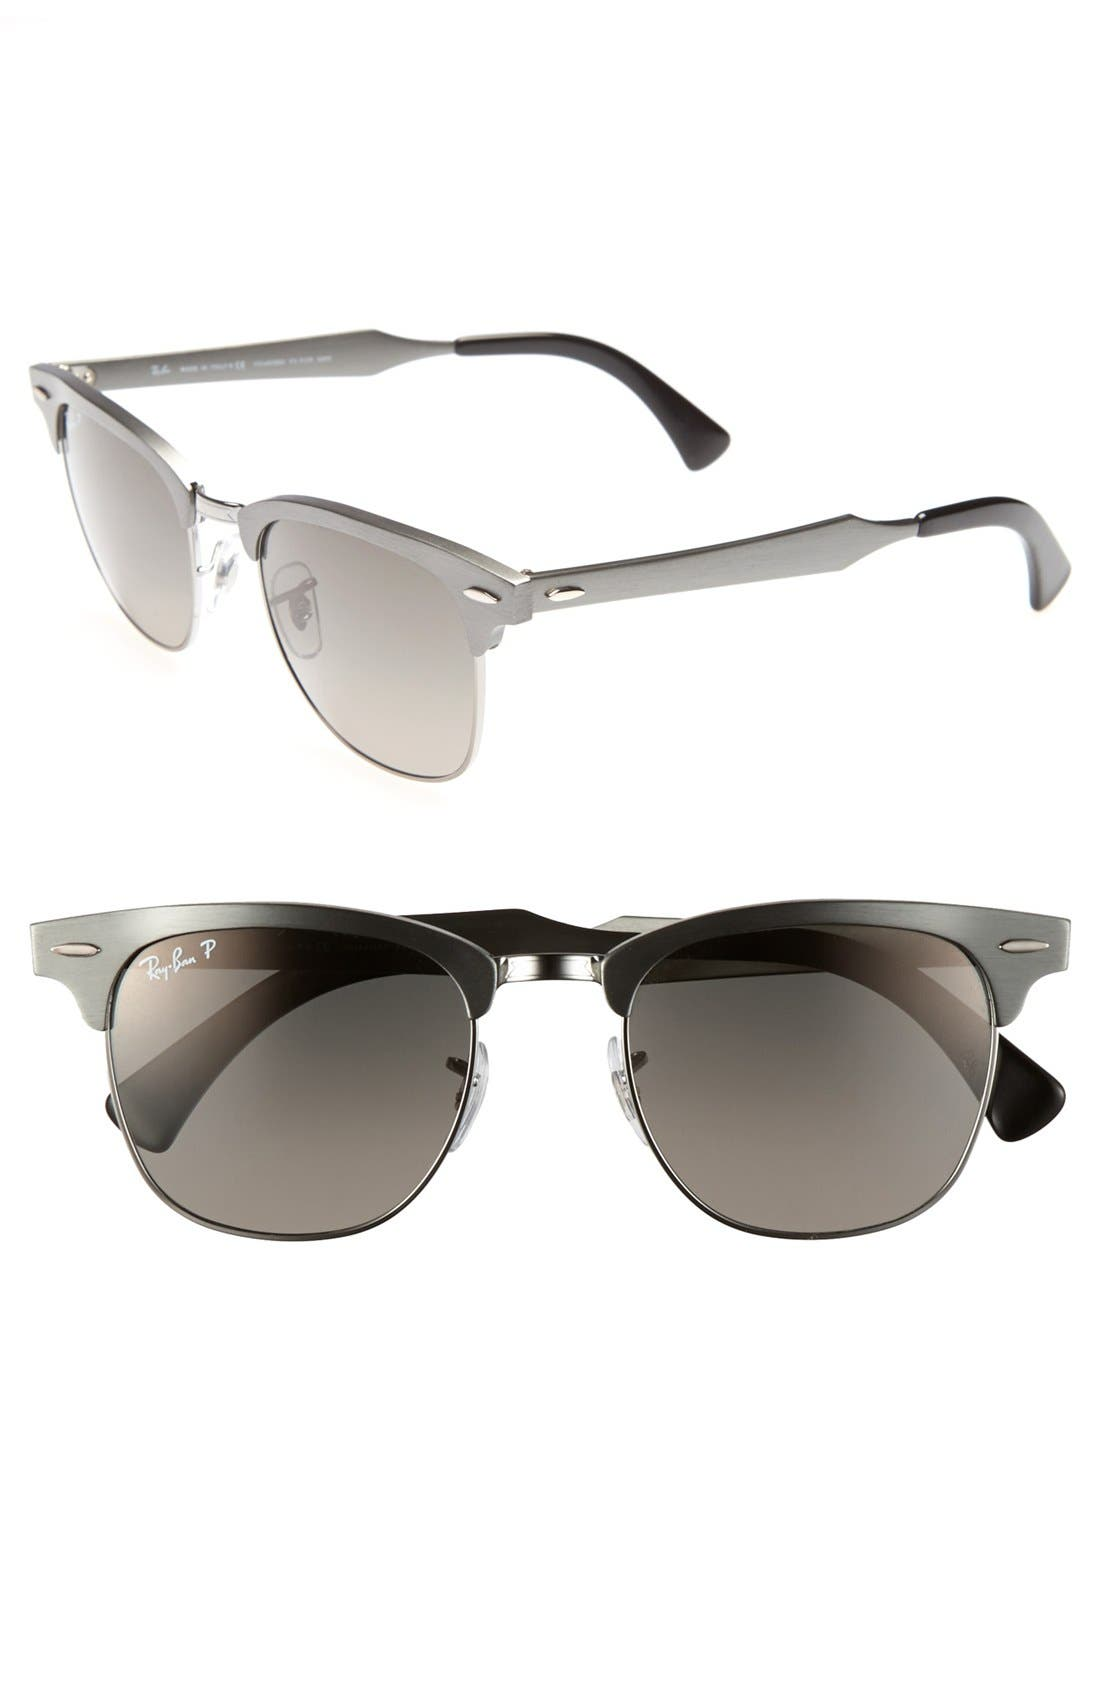 Alternate Image 1 Selected - Ray-Ban 'Clubmaster' 51mm Polarized Sunglasses